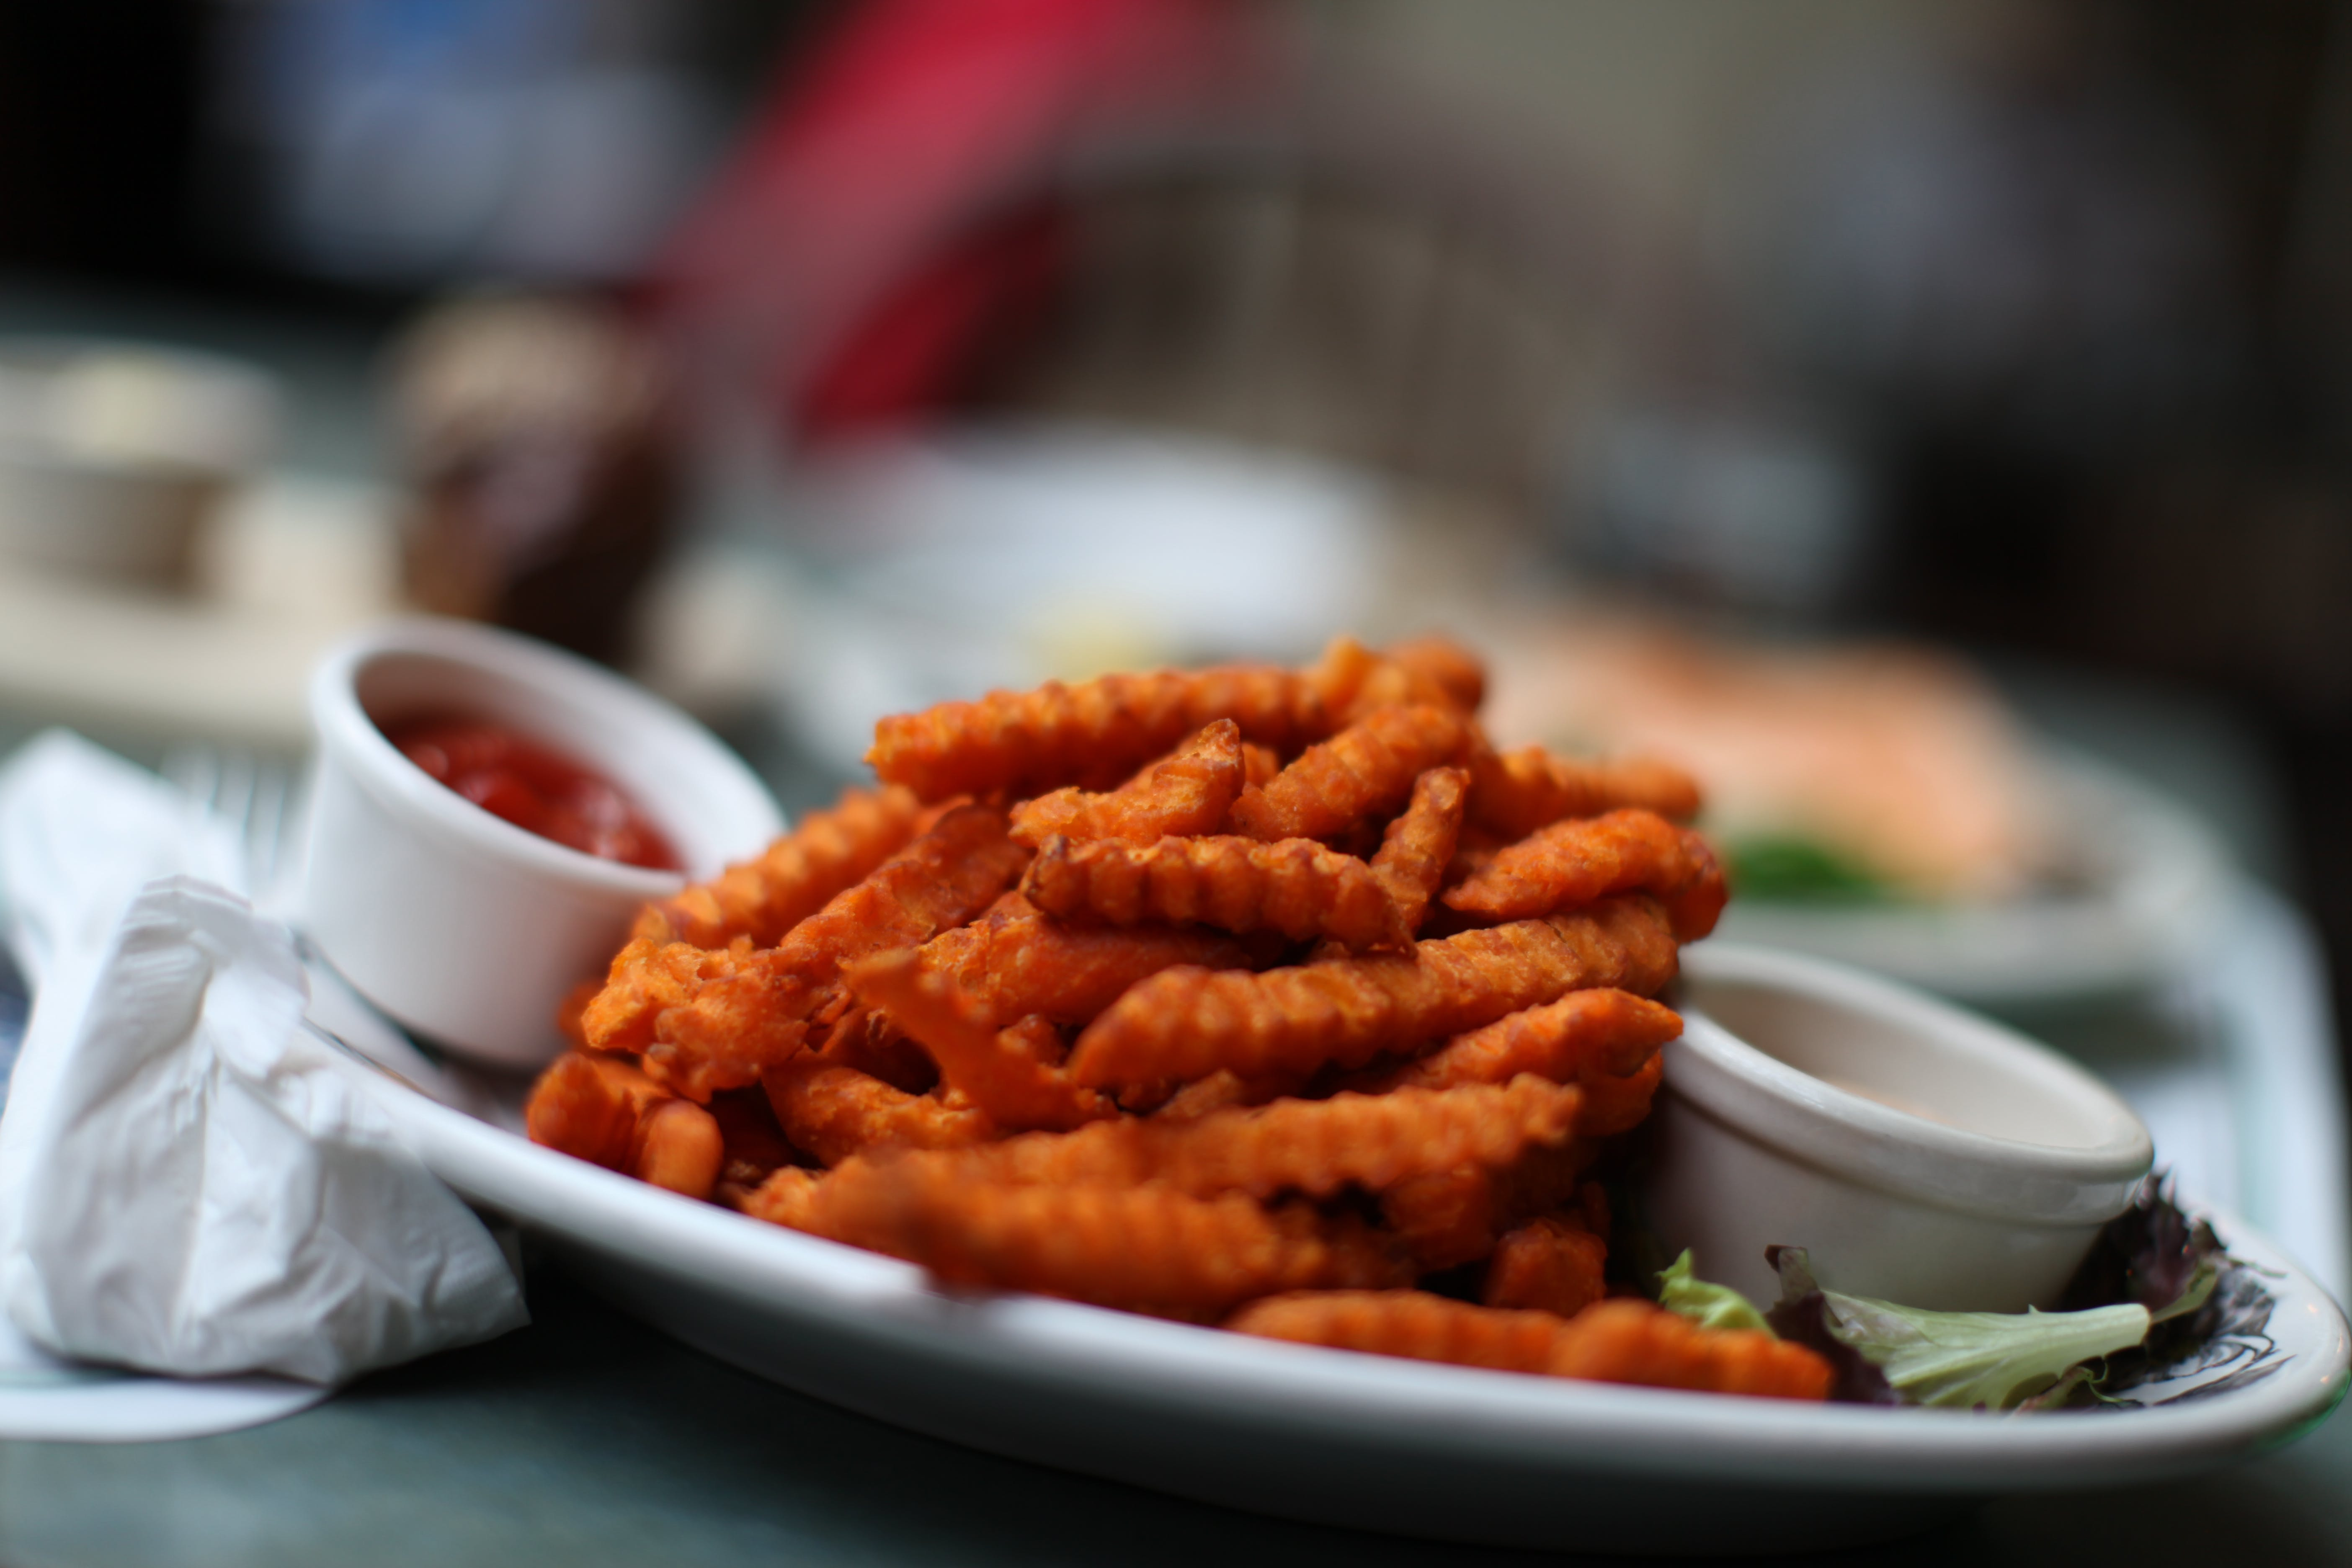 Fried Food on Round White Ceramic Plate